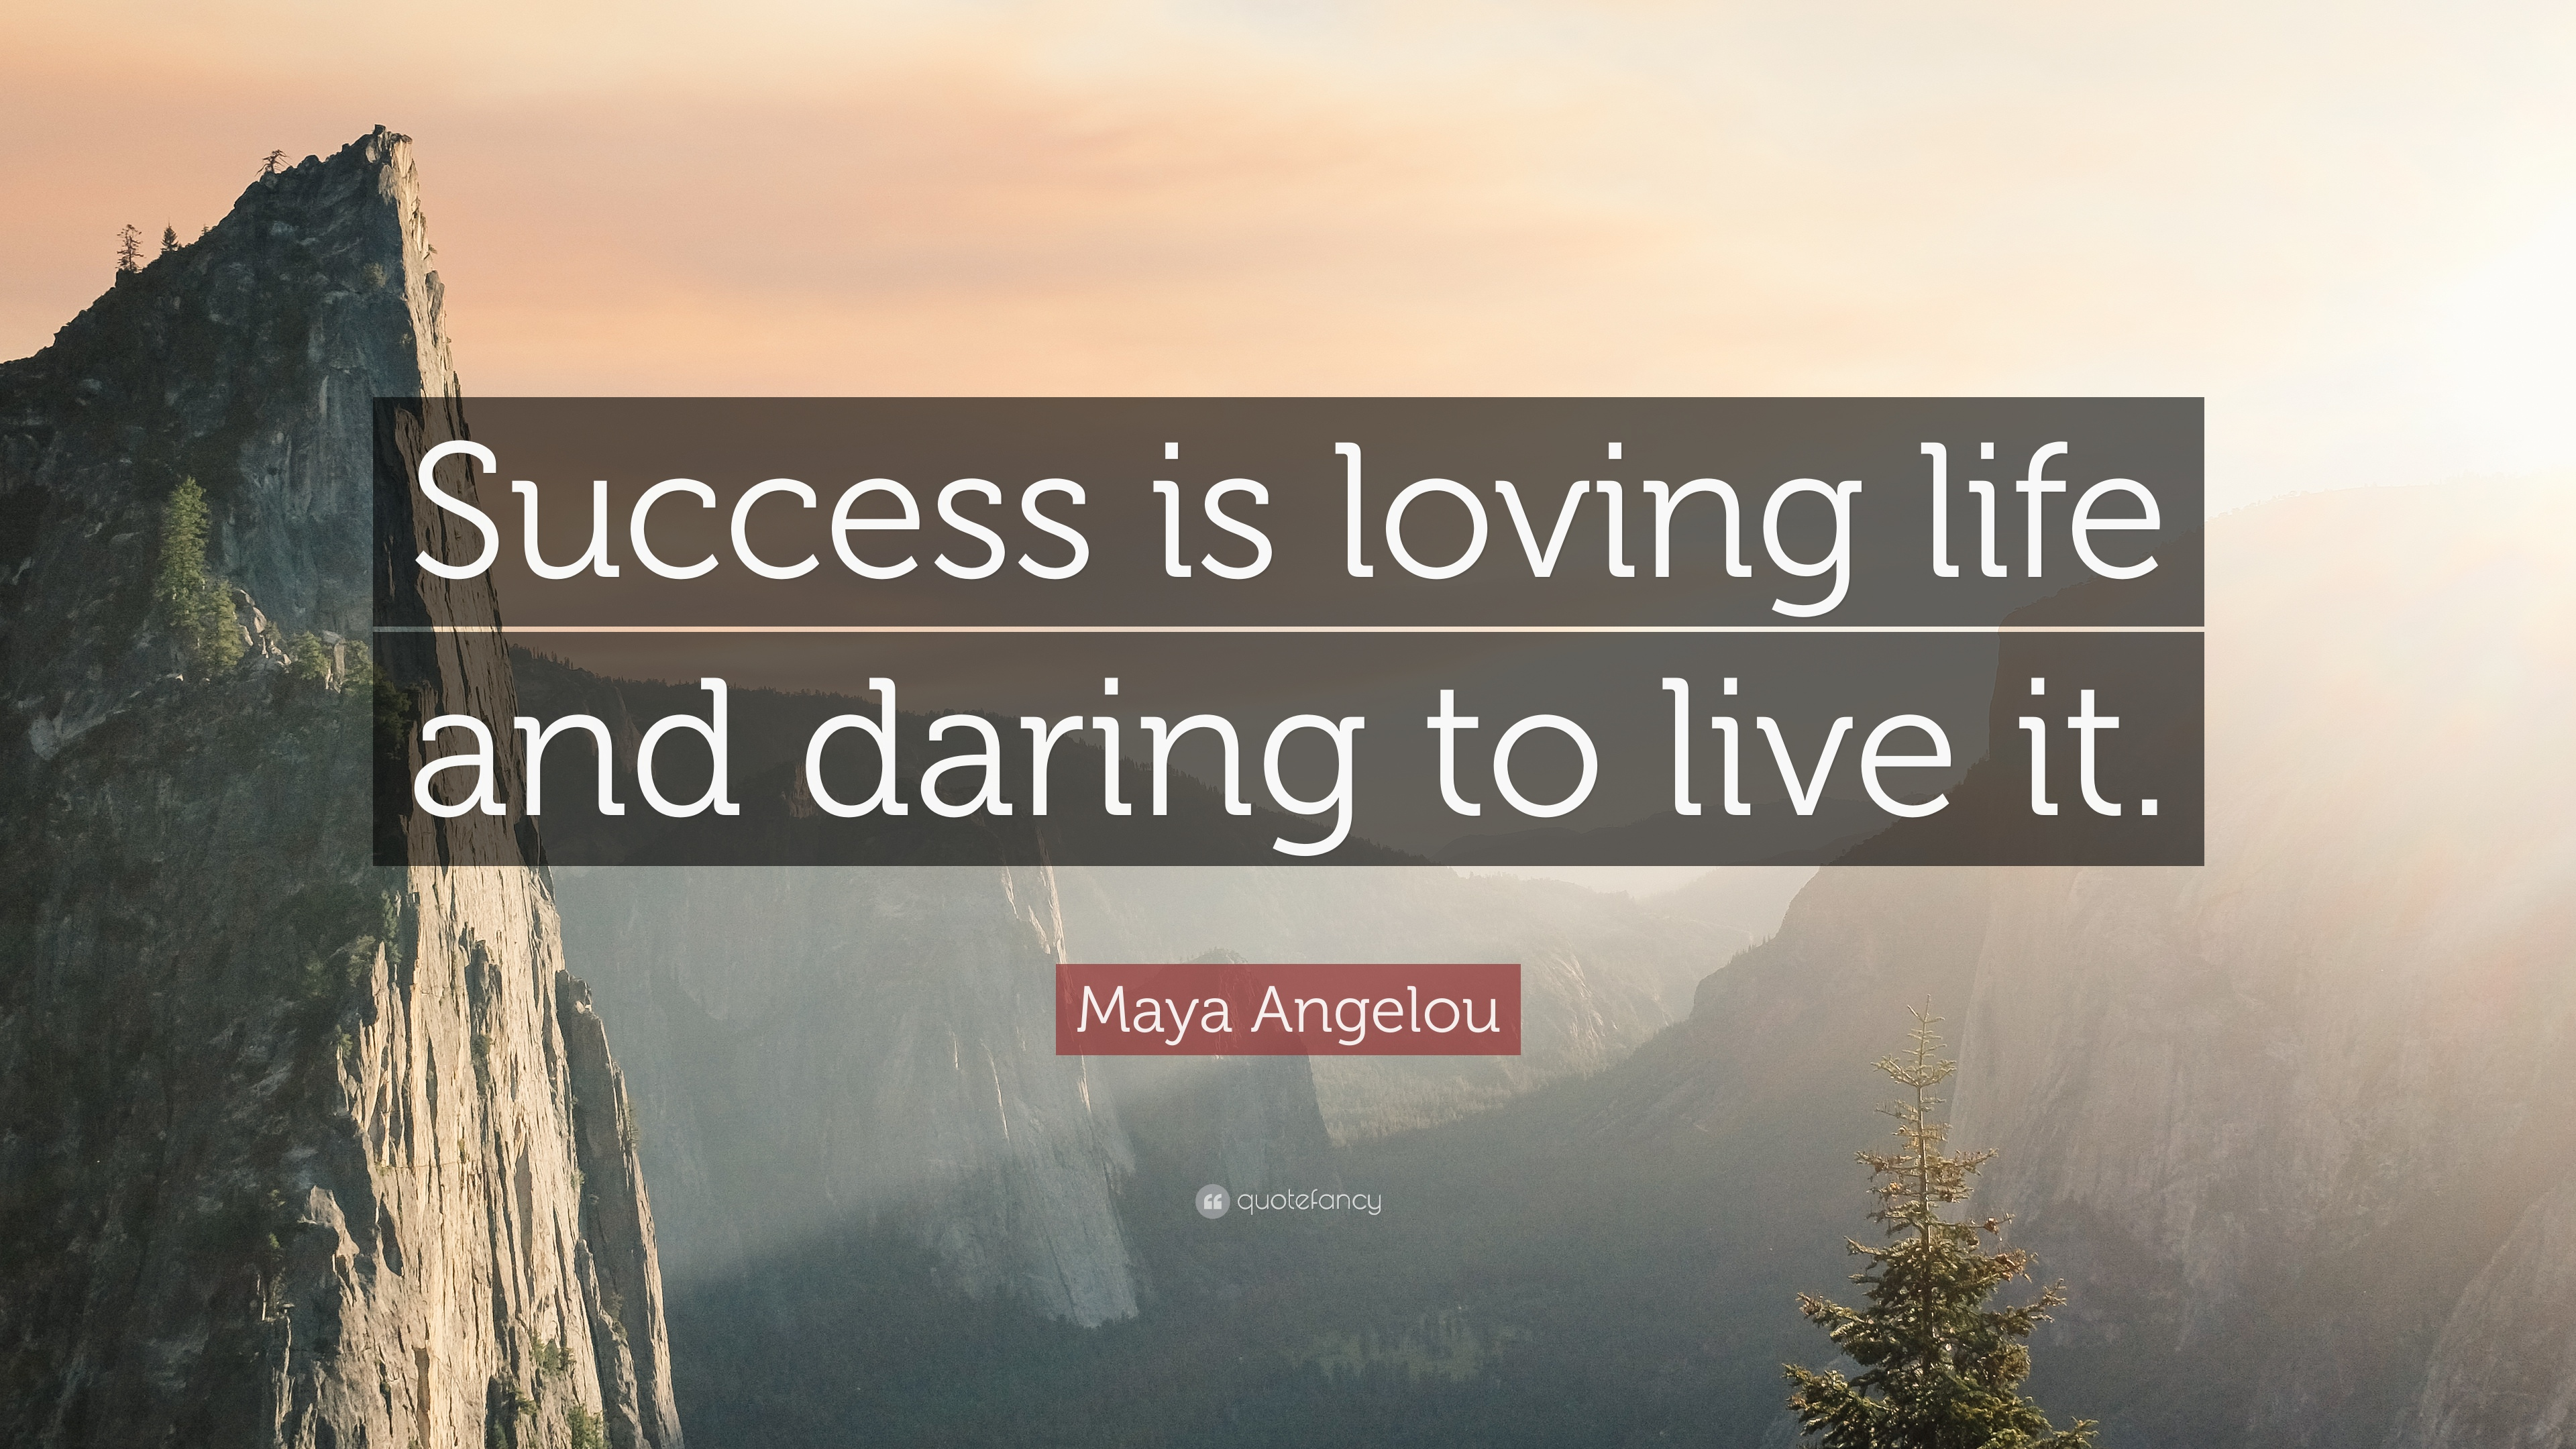 Maya Angelou Quote Success Is Loving Life And Daring To Live It